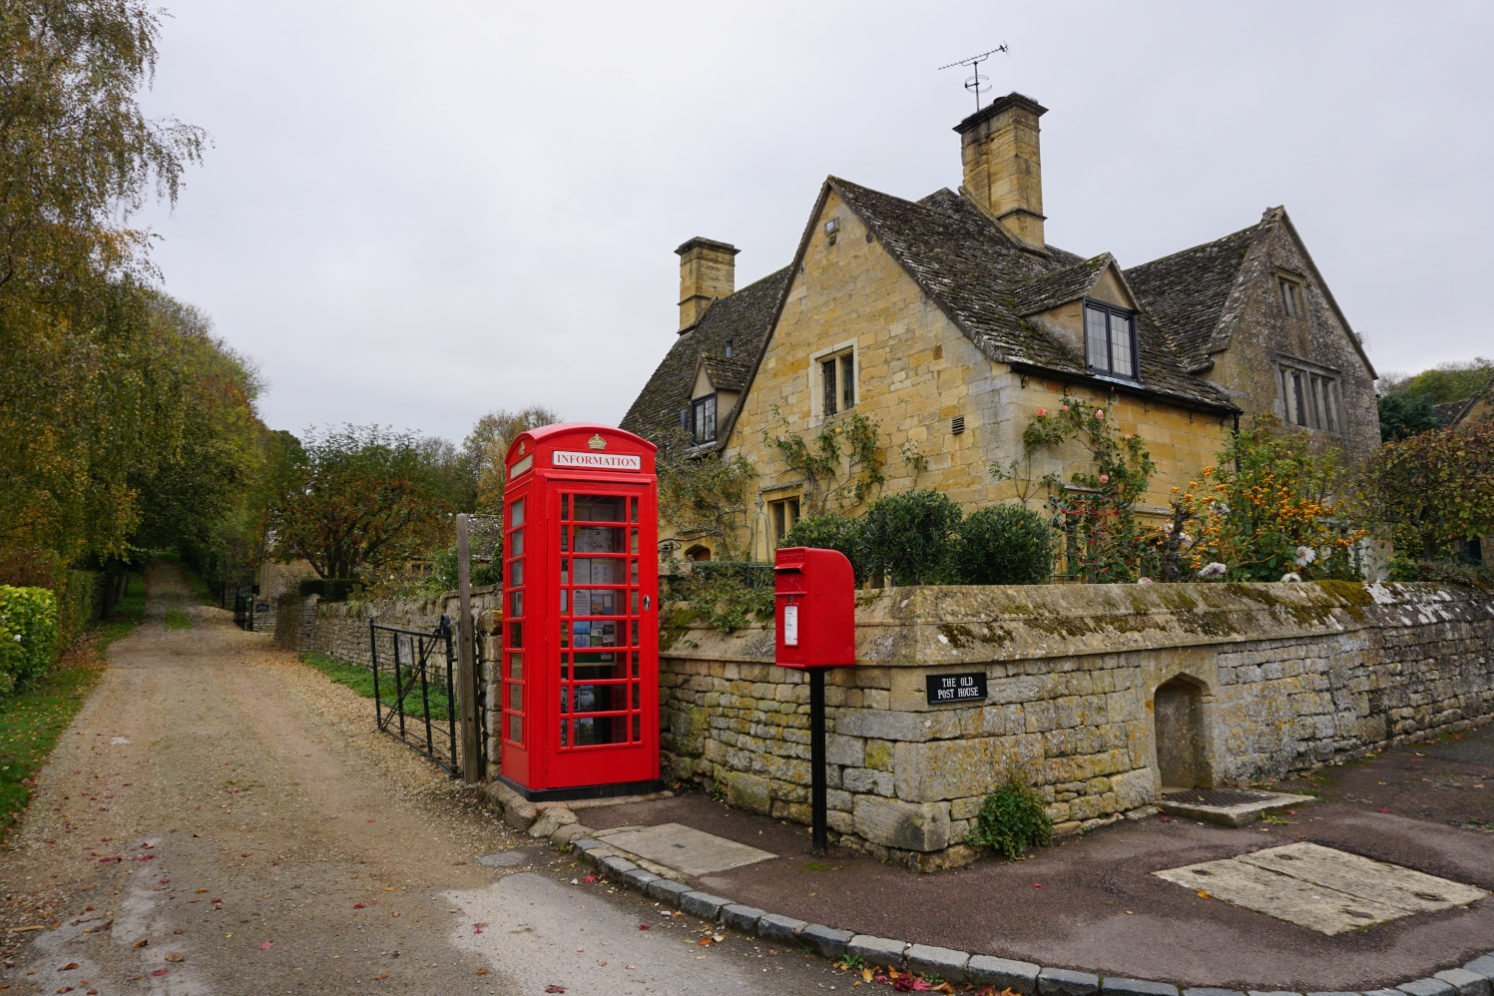 Bright red telephone box and post box contrast against the honey-coloured Cotswold cottage in Stanton